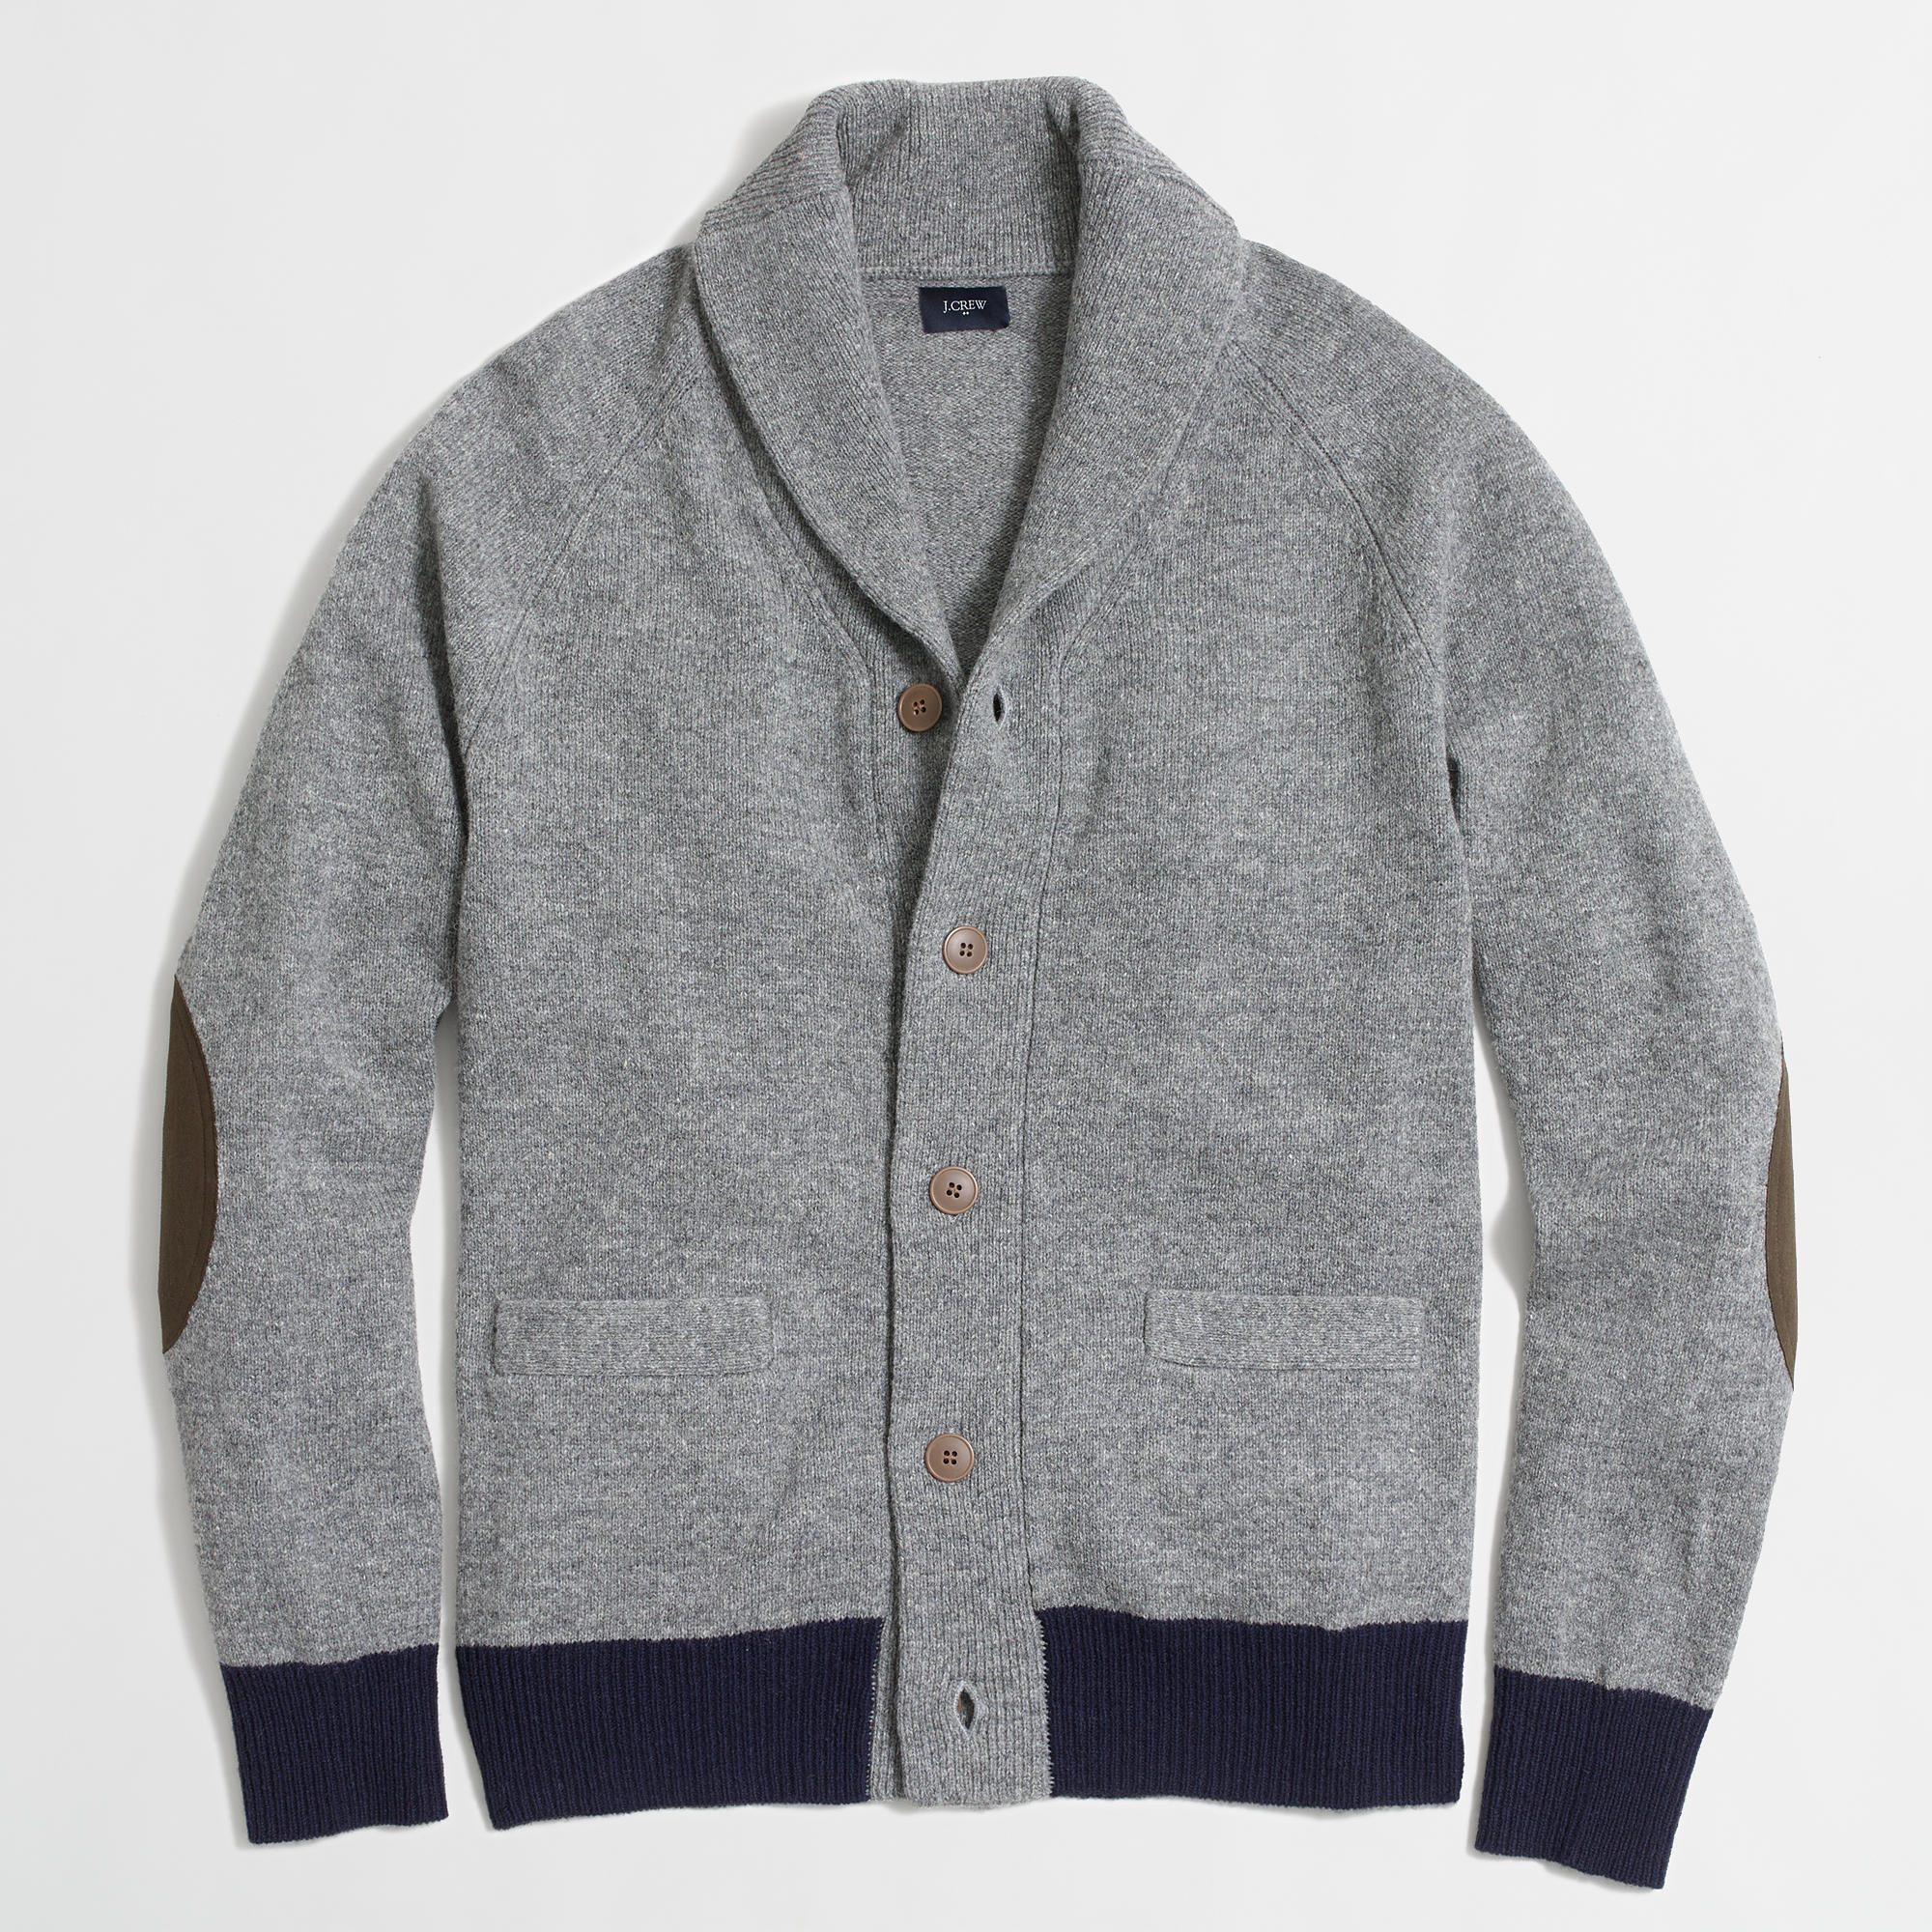 grey-cardigan-jcrew